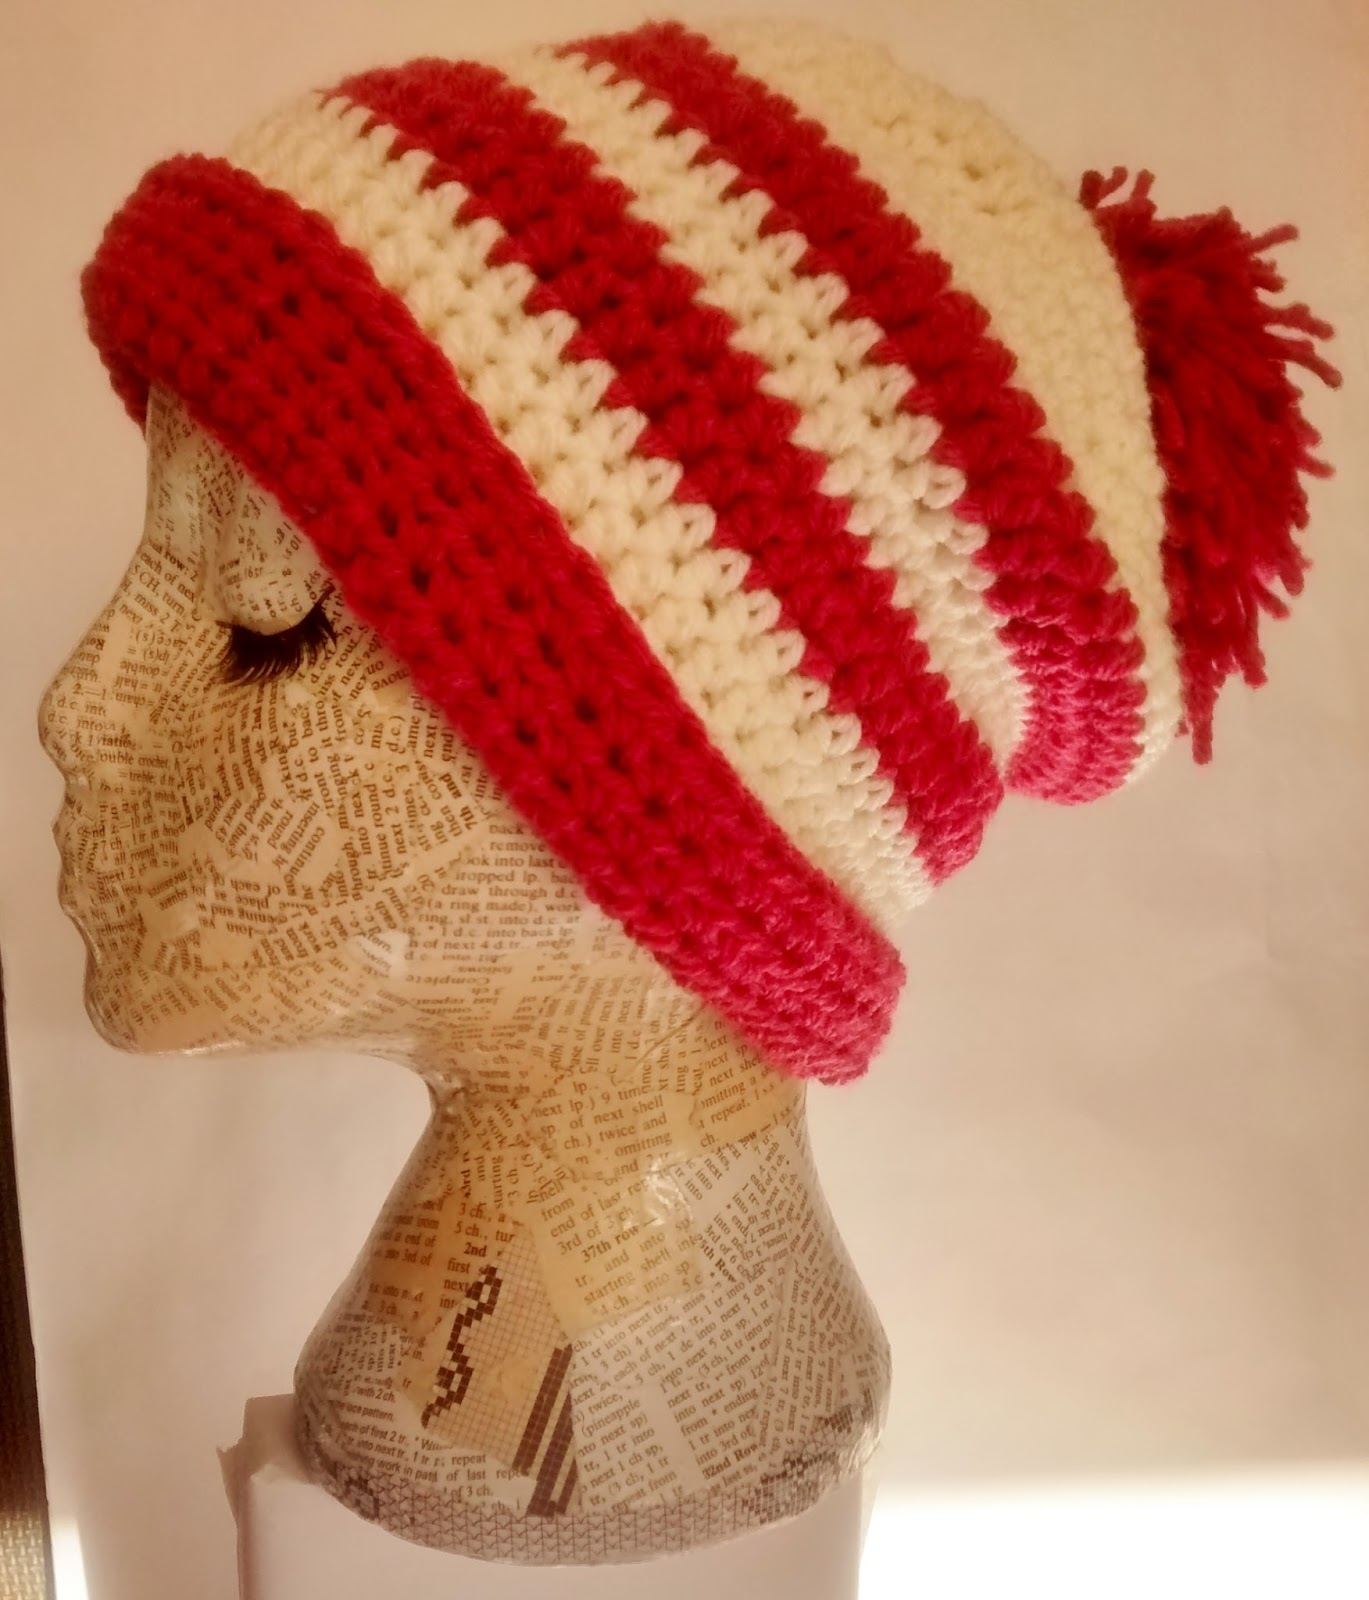 String Theory Crochet: Very quick, very easy crochet hat pattern ...